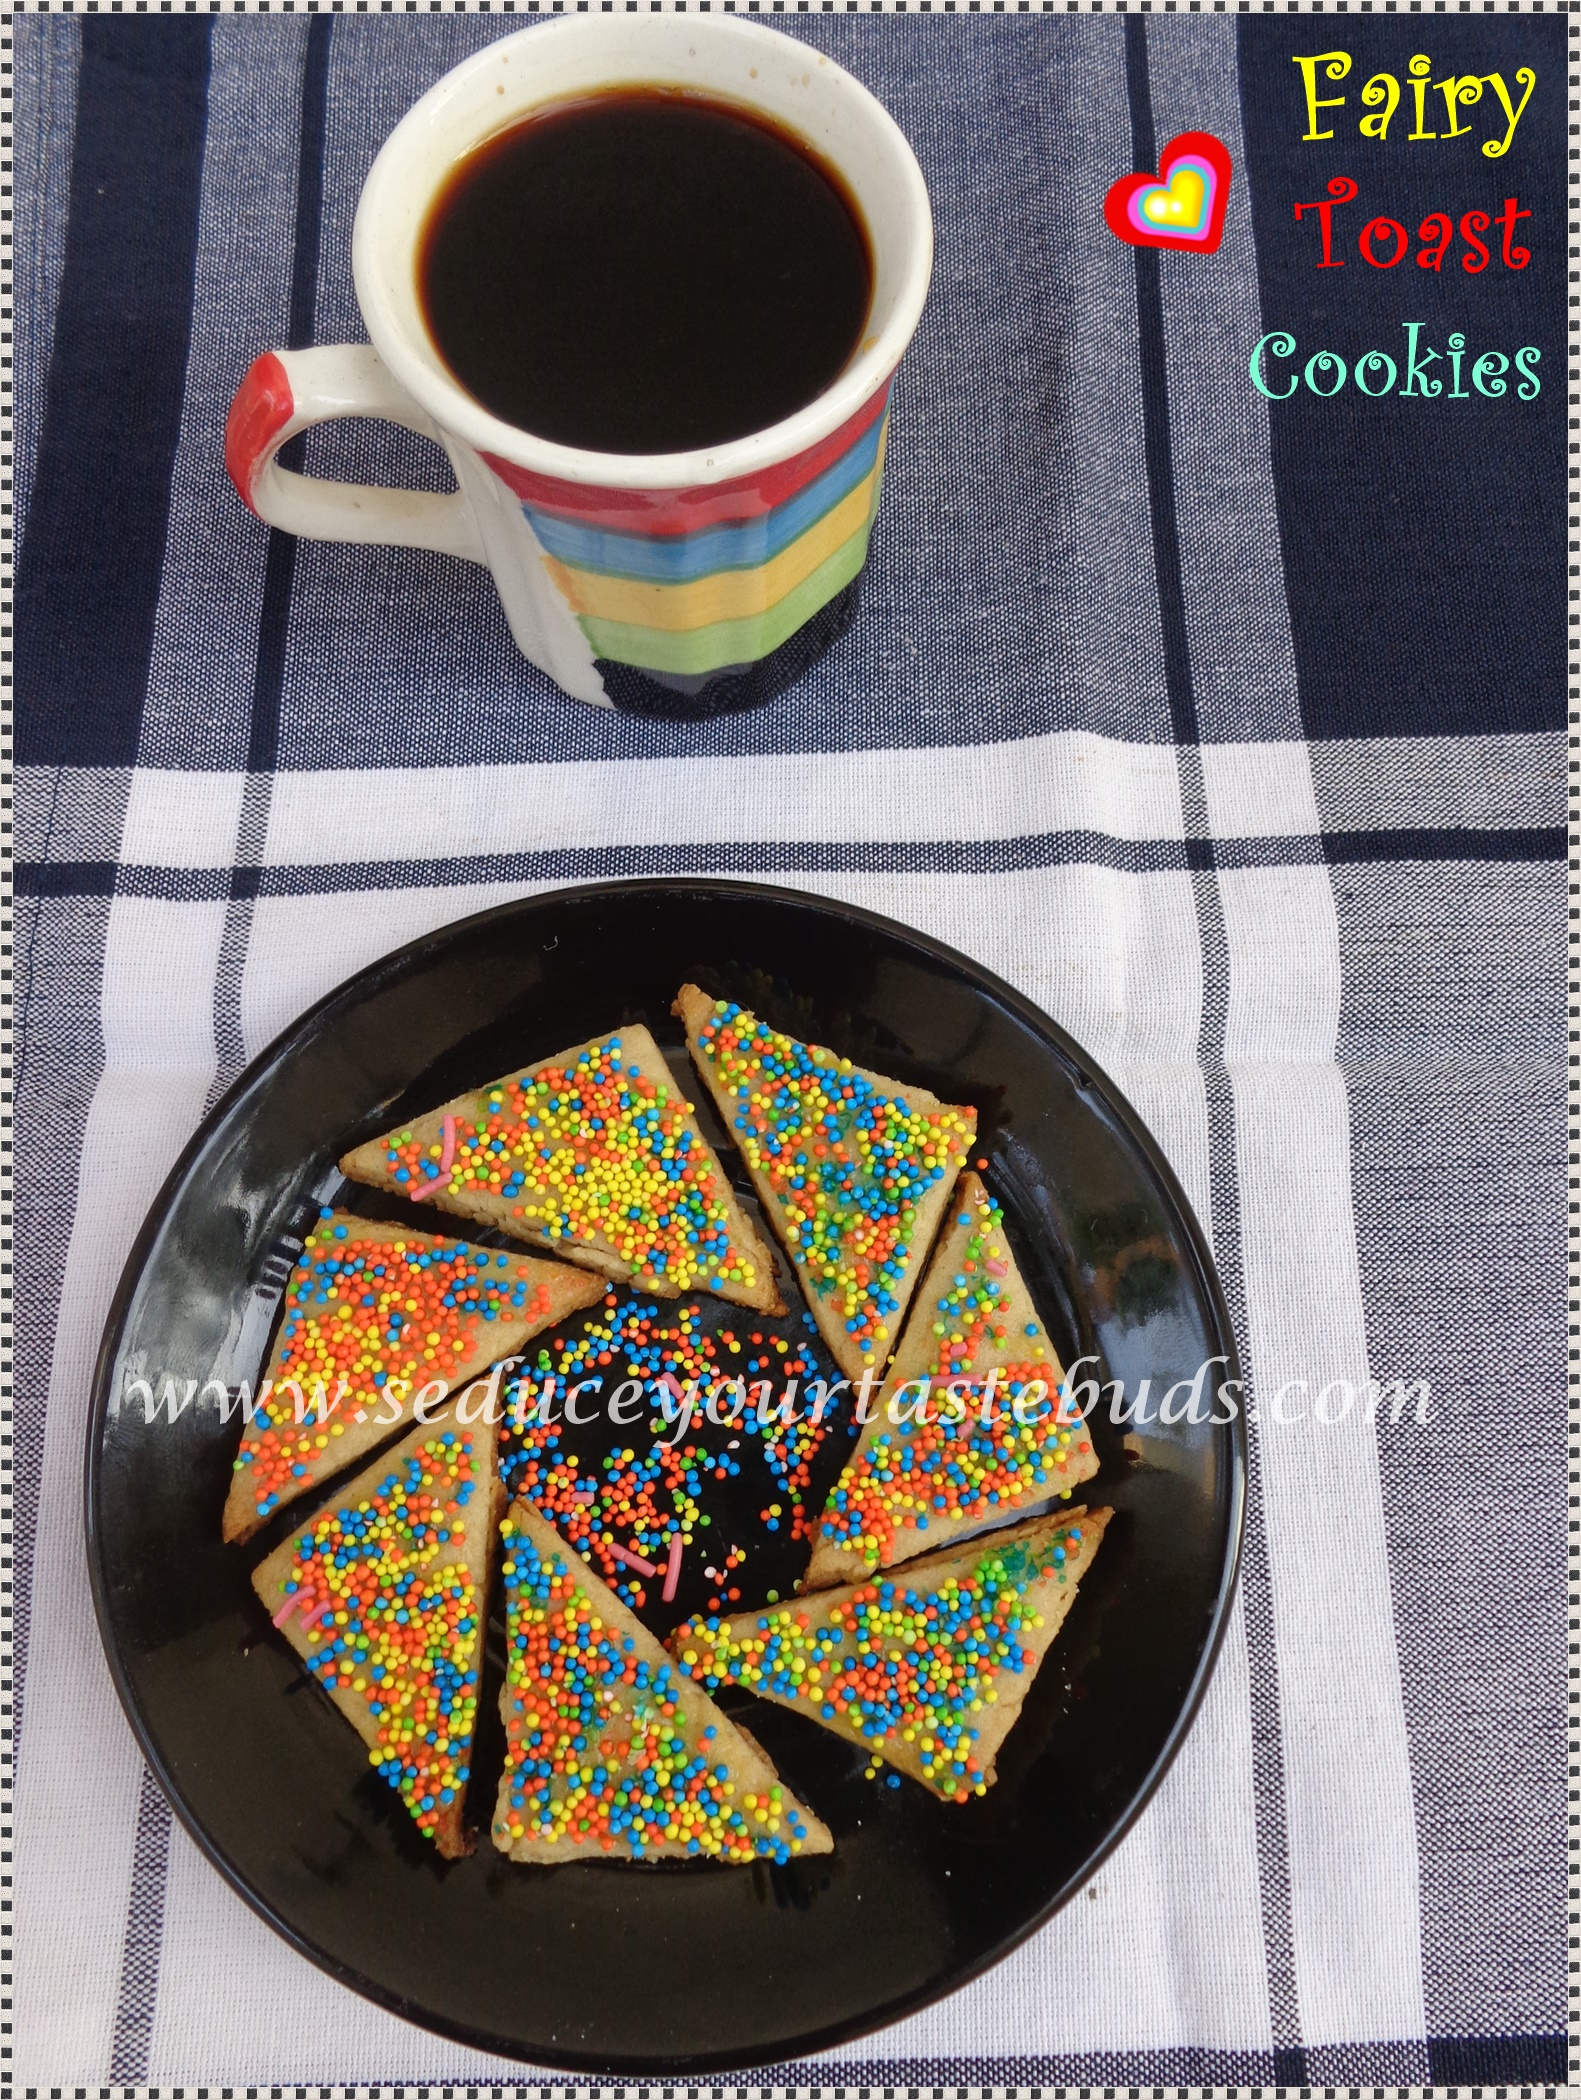 How to make fairy bread toast cookie